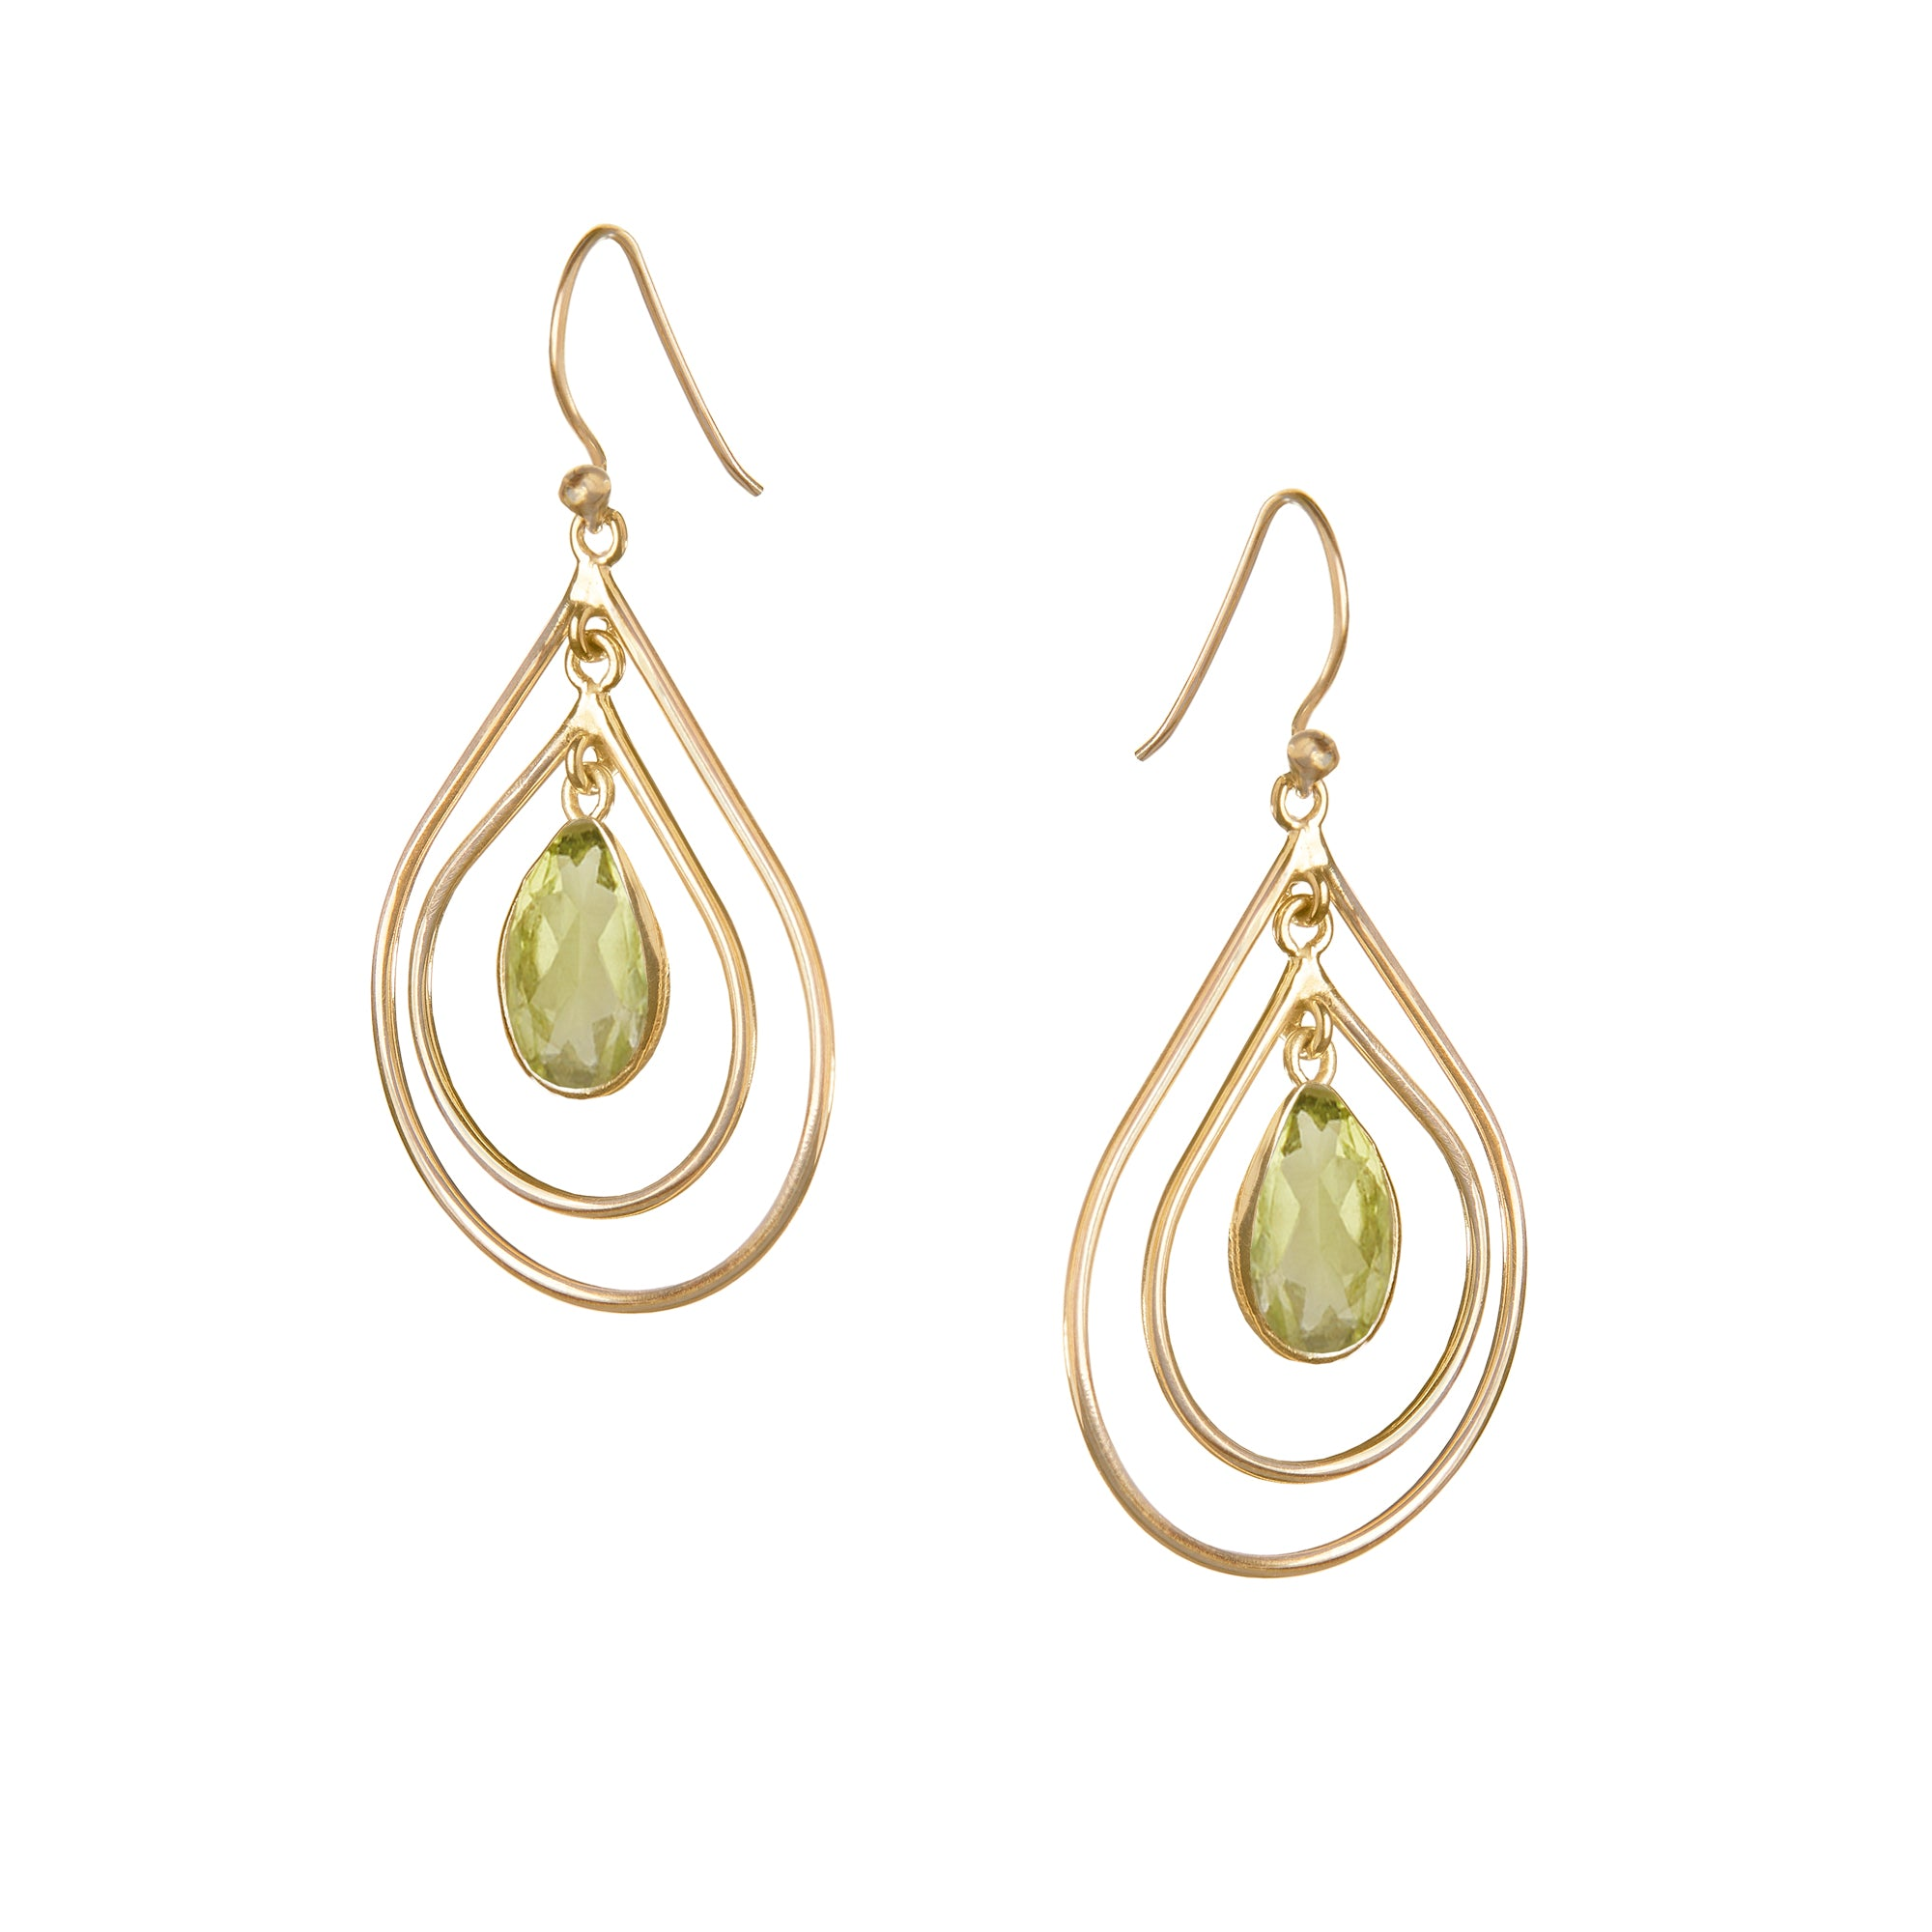 Lolita Earring in Gold with Peridot